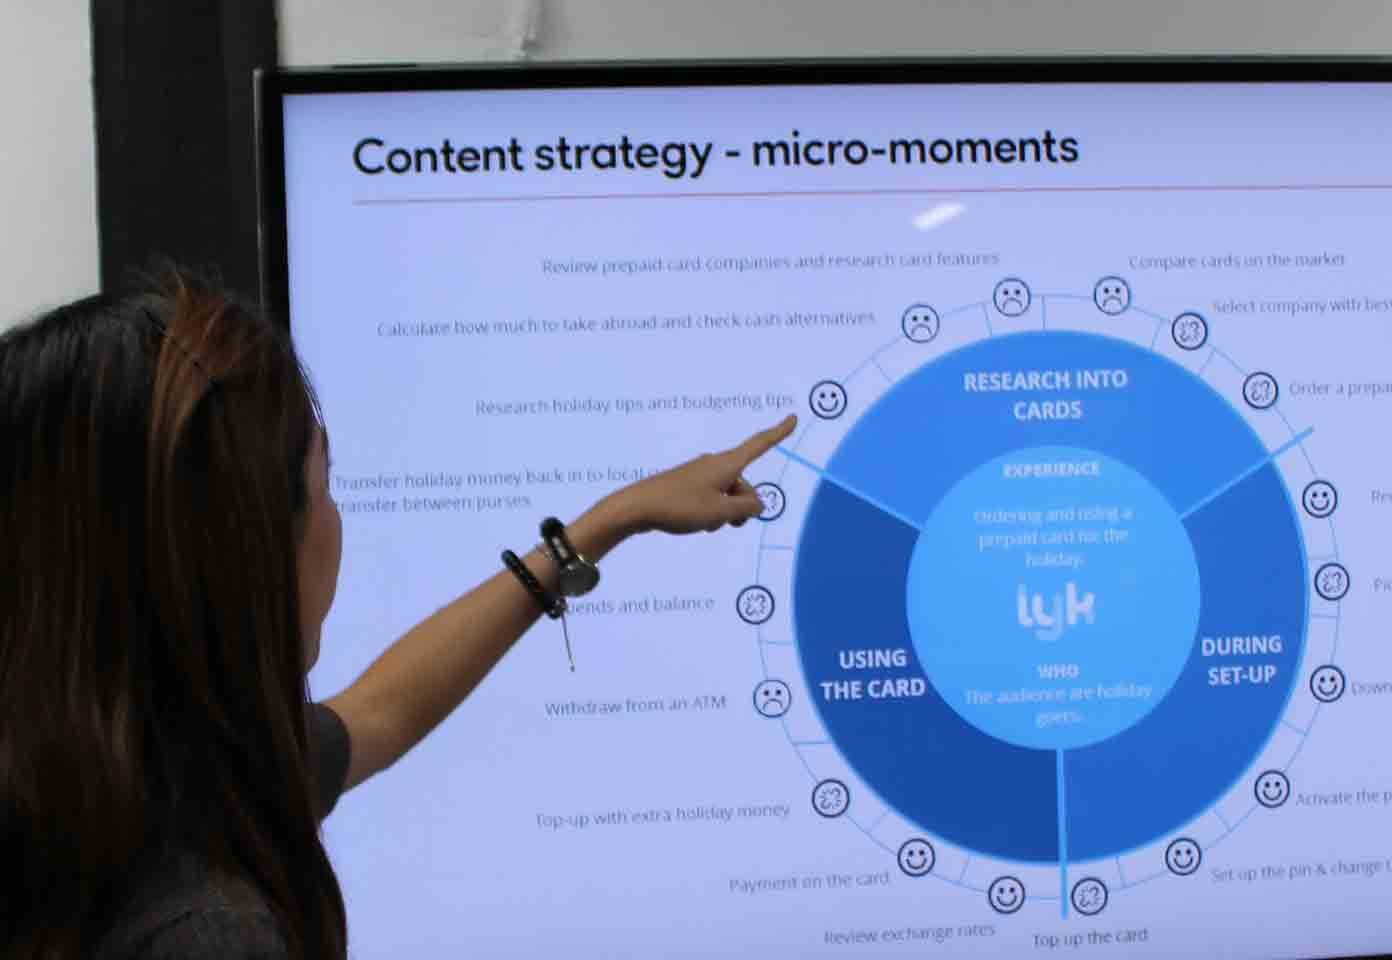 Using Cyber-Duck's Micro-Moments Wheel to plan the UX Content Strategy